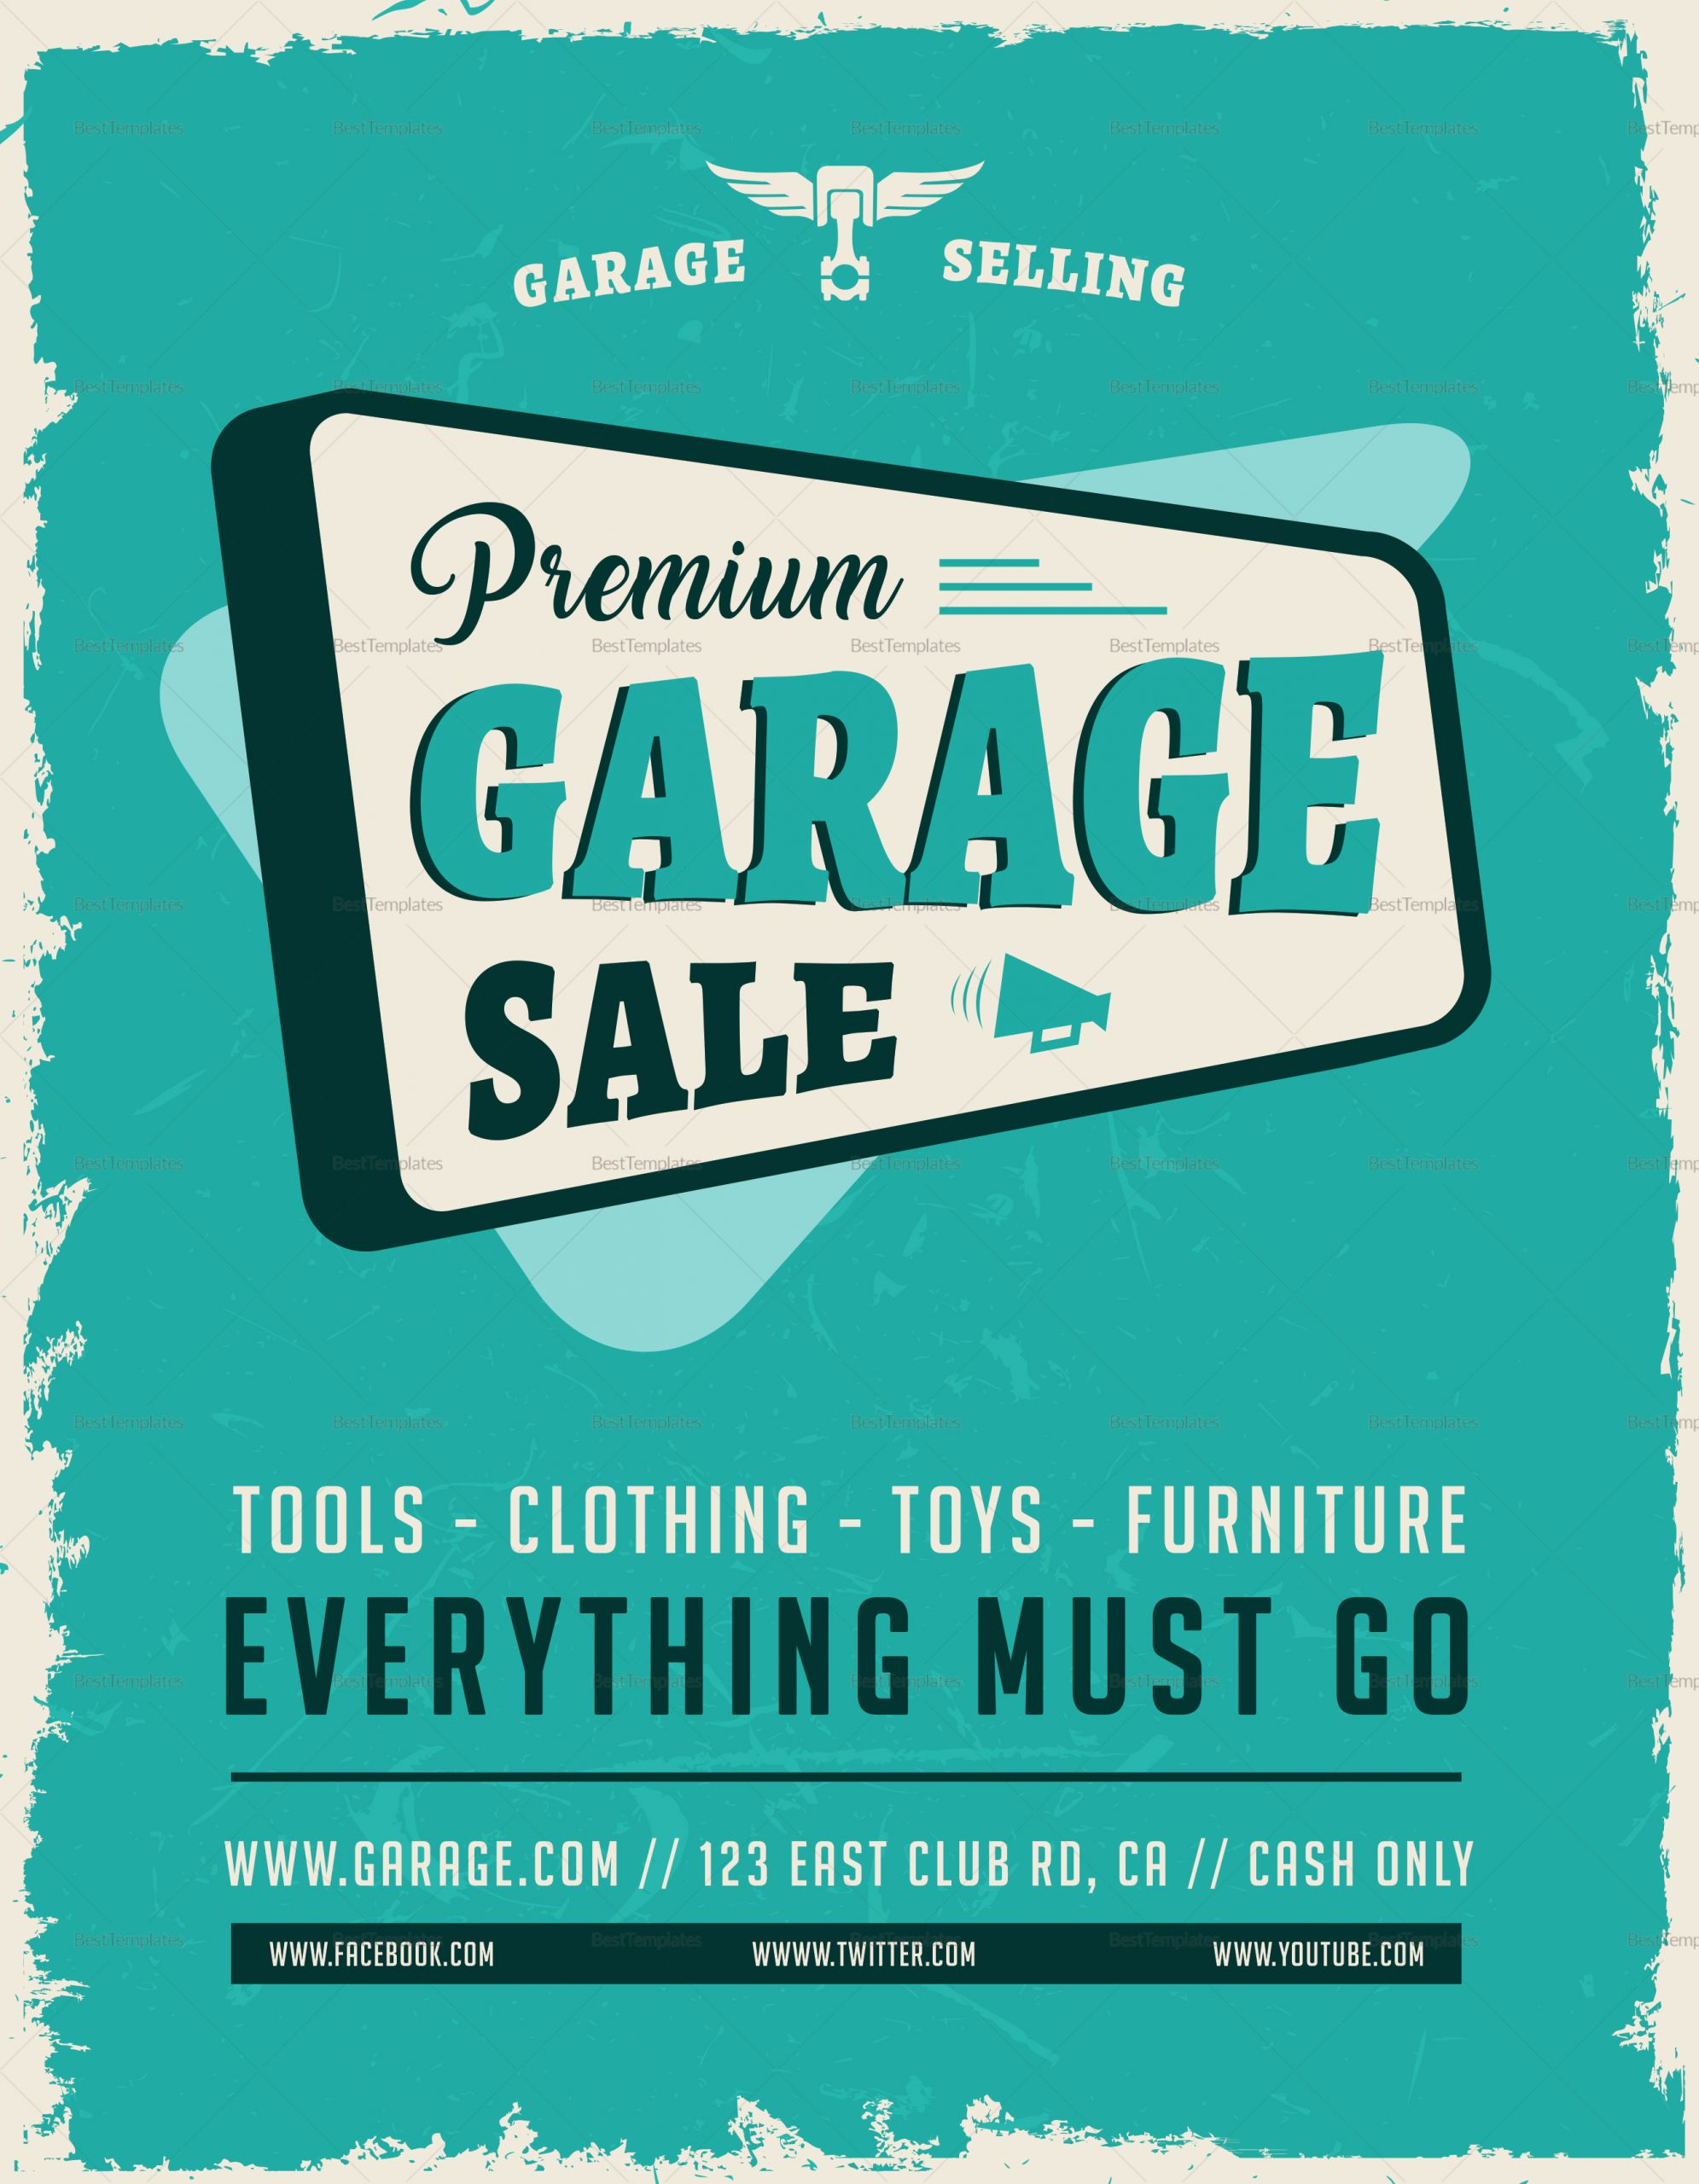 Yard Sale Template Microsoft Word Unique Garage Sale Flyer Design Template In Word Psd Publisher